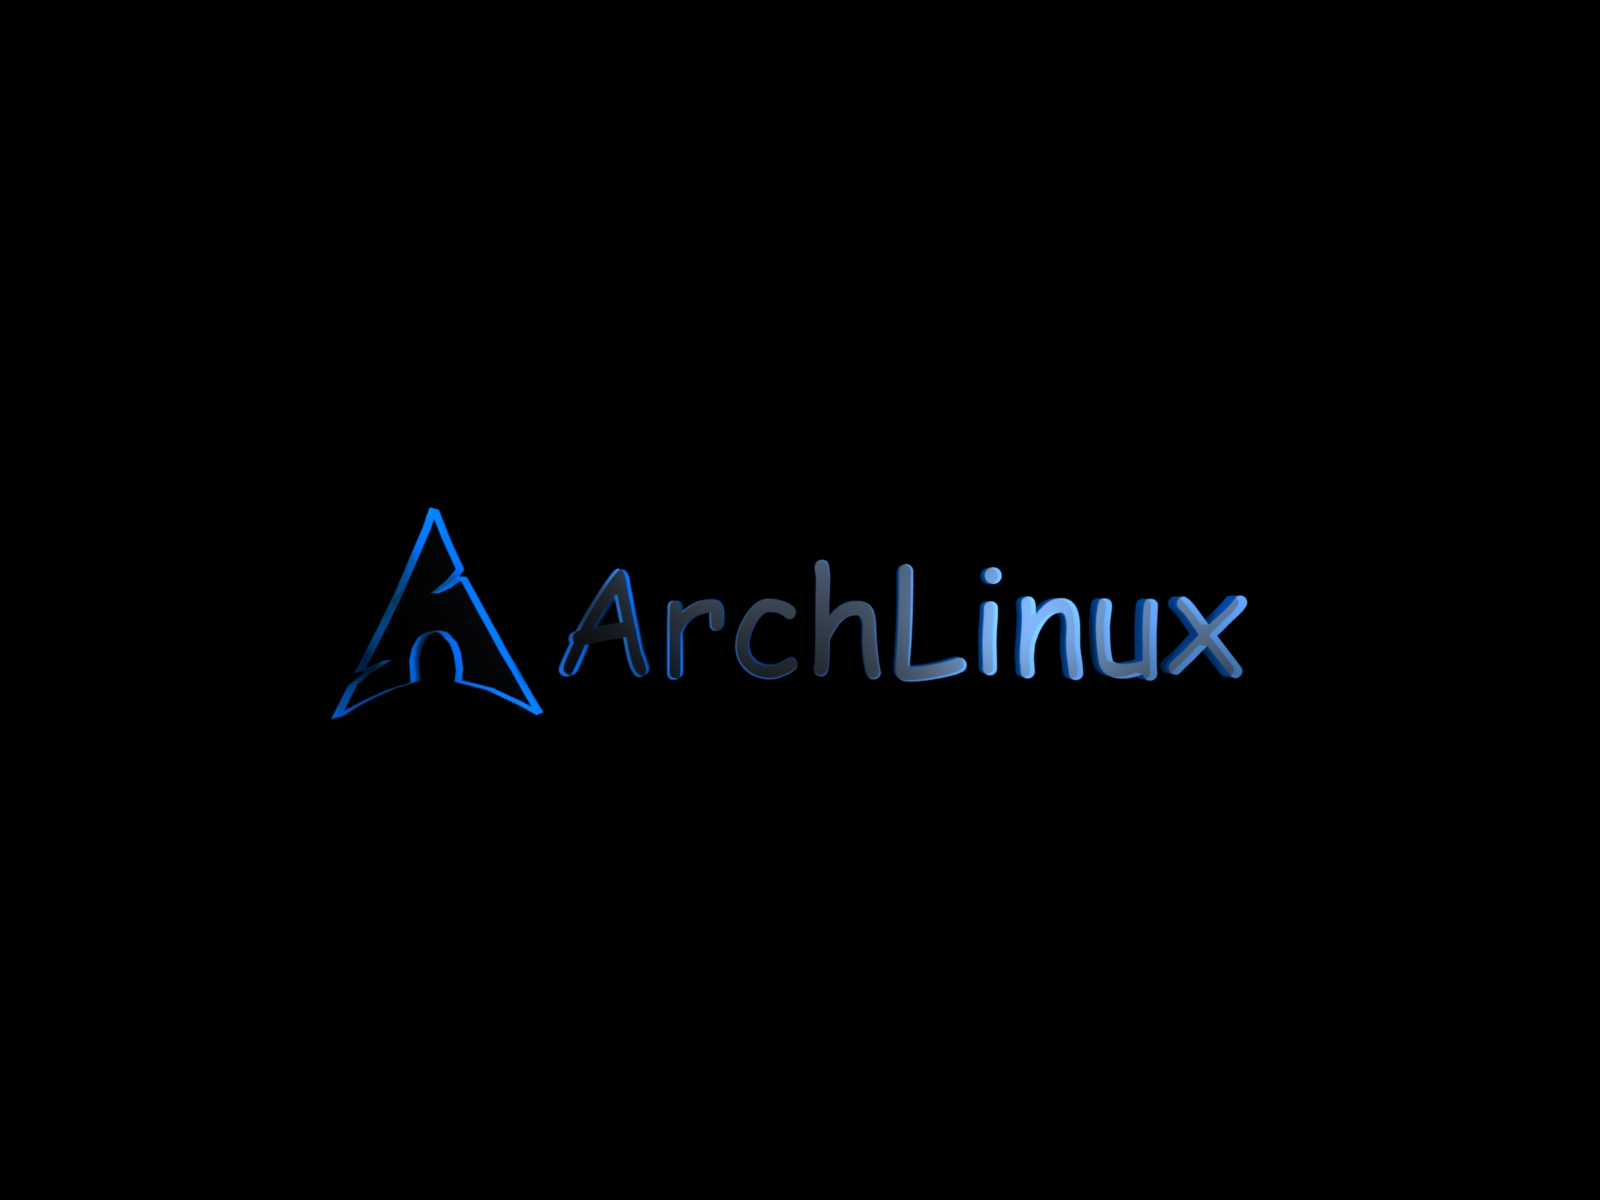 Dark Arch Linux Wallpaper Black Arch Linux Widescreen Background Other 1600x1200